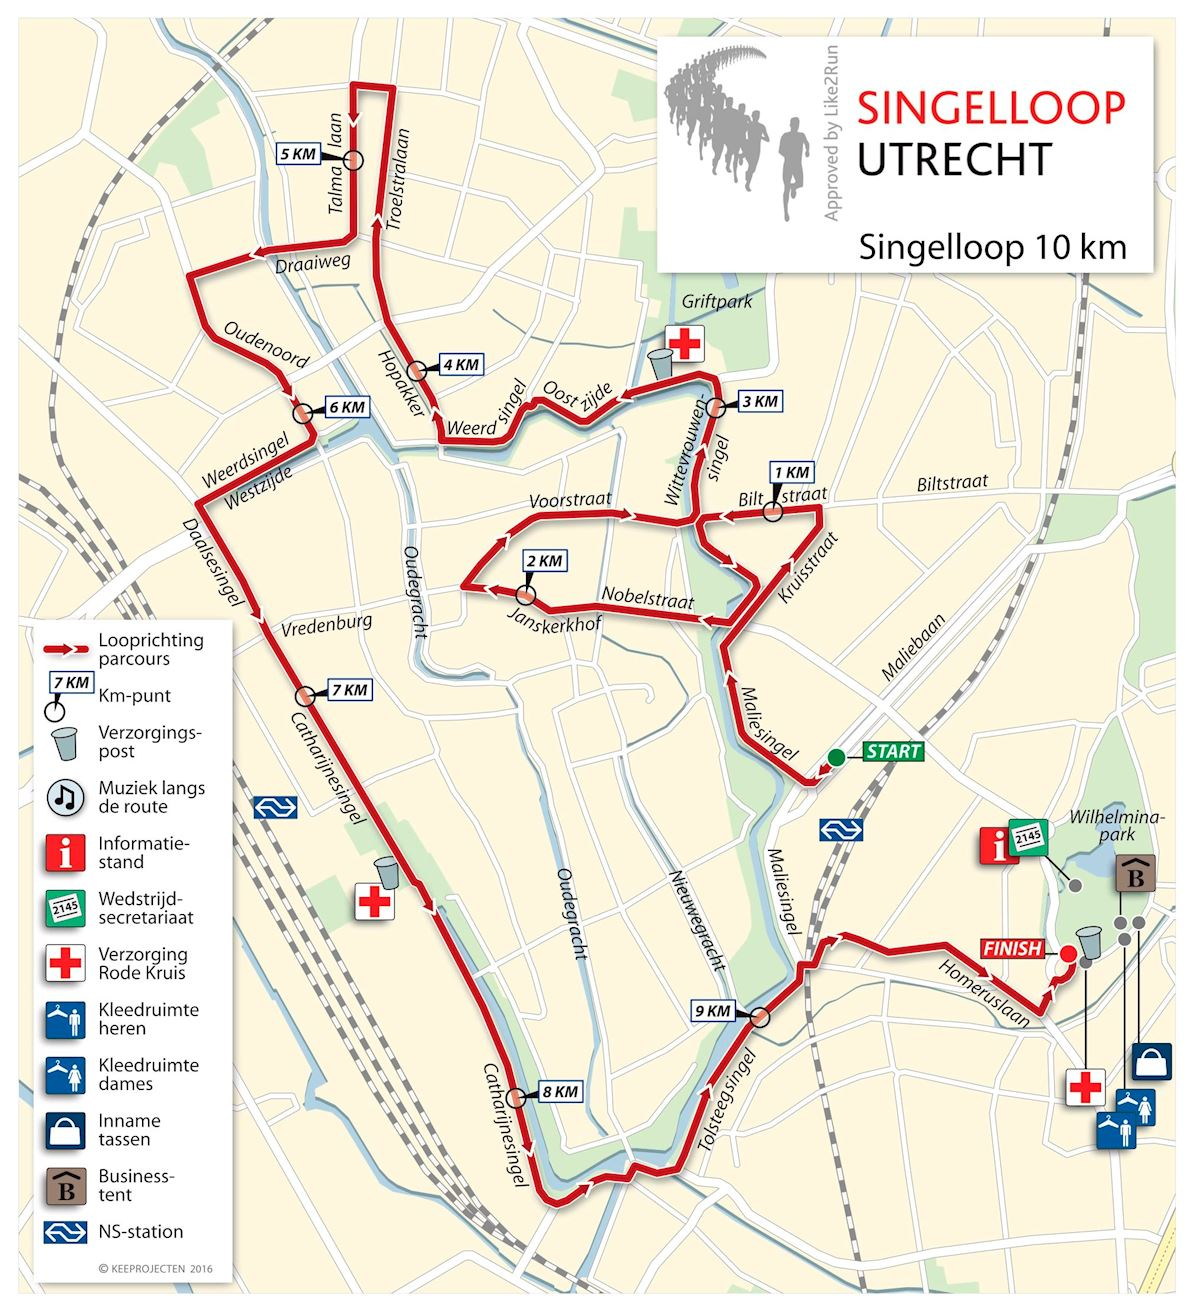 Singelloop Utrecht Route Map